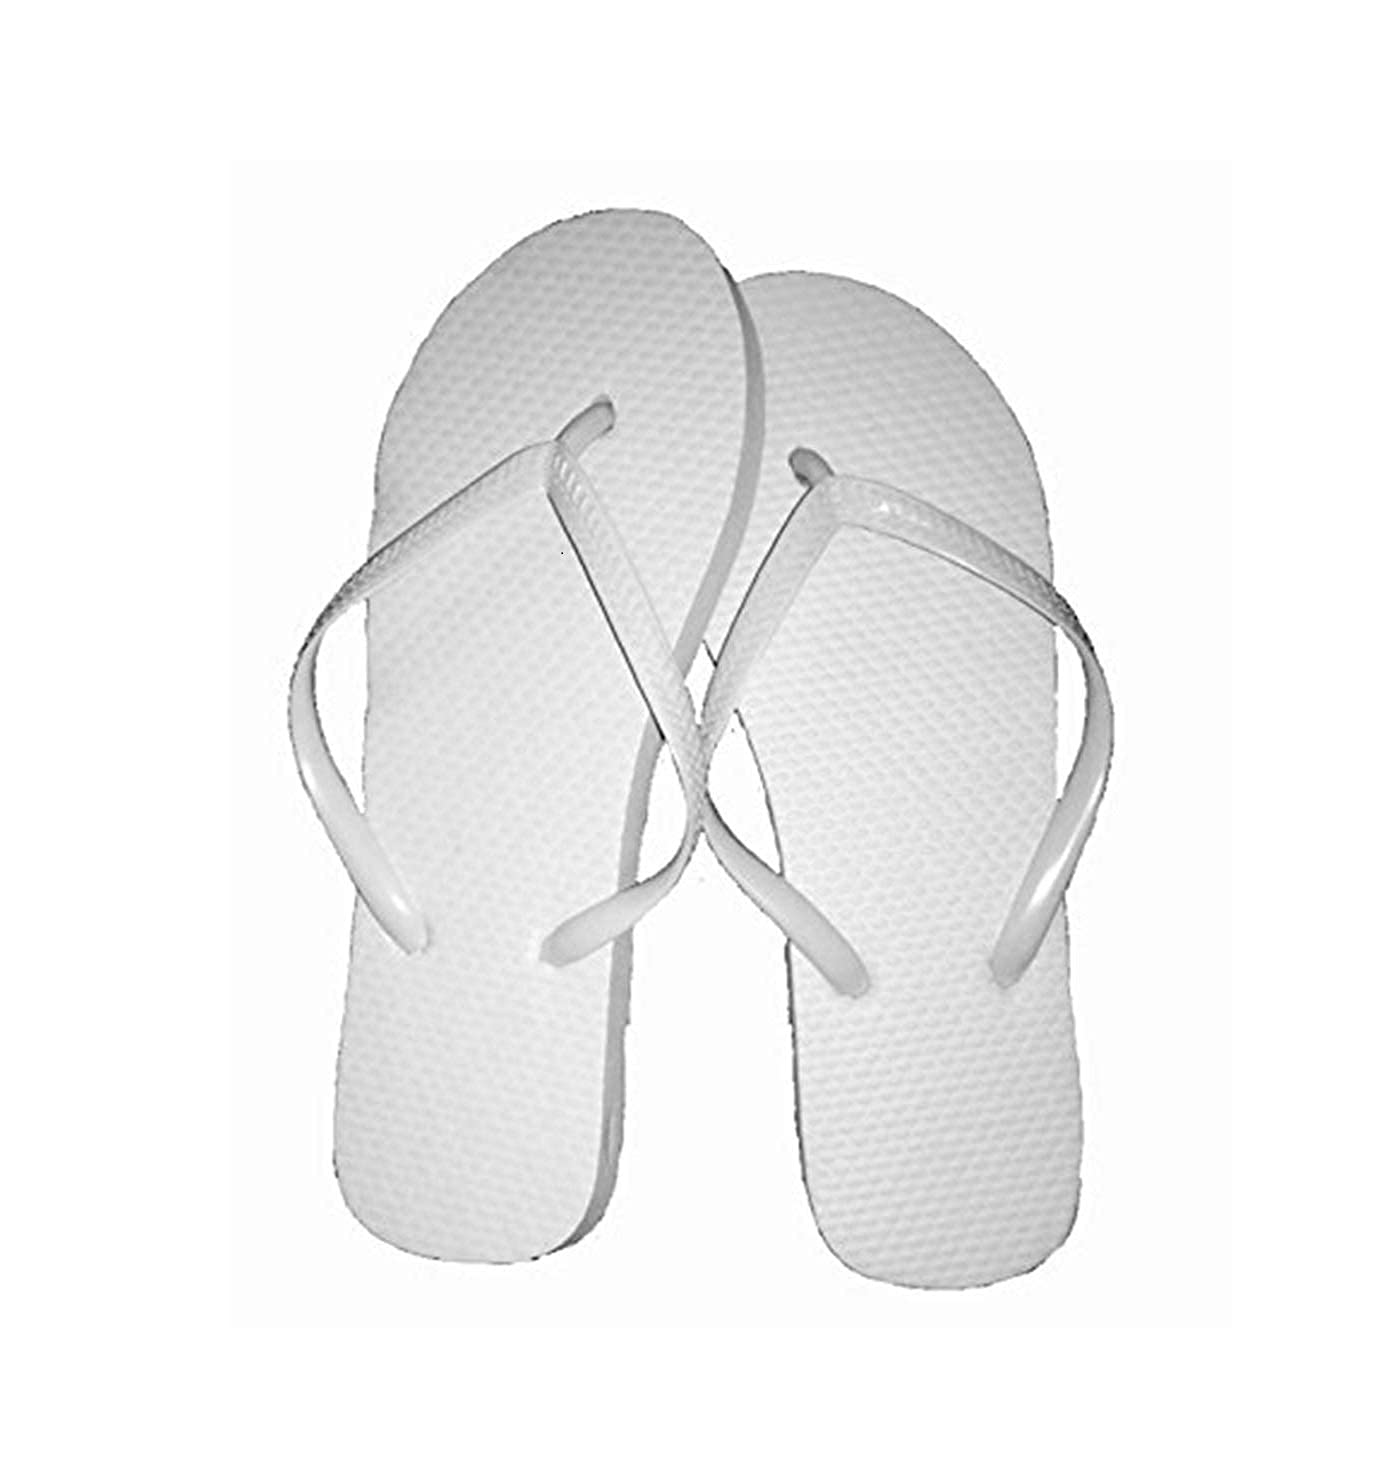 809d17208 Wholesale Ladies 72 Pairs Solid White Flip Flops  Amazon.co.uk  Shoes   Bags